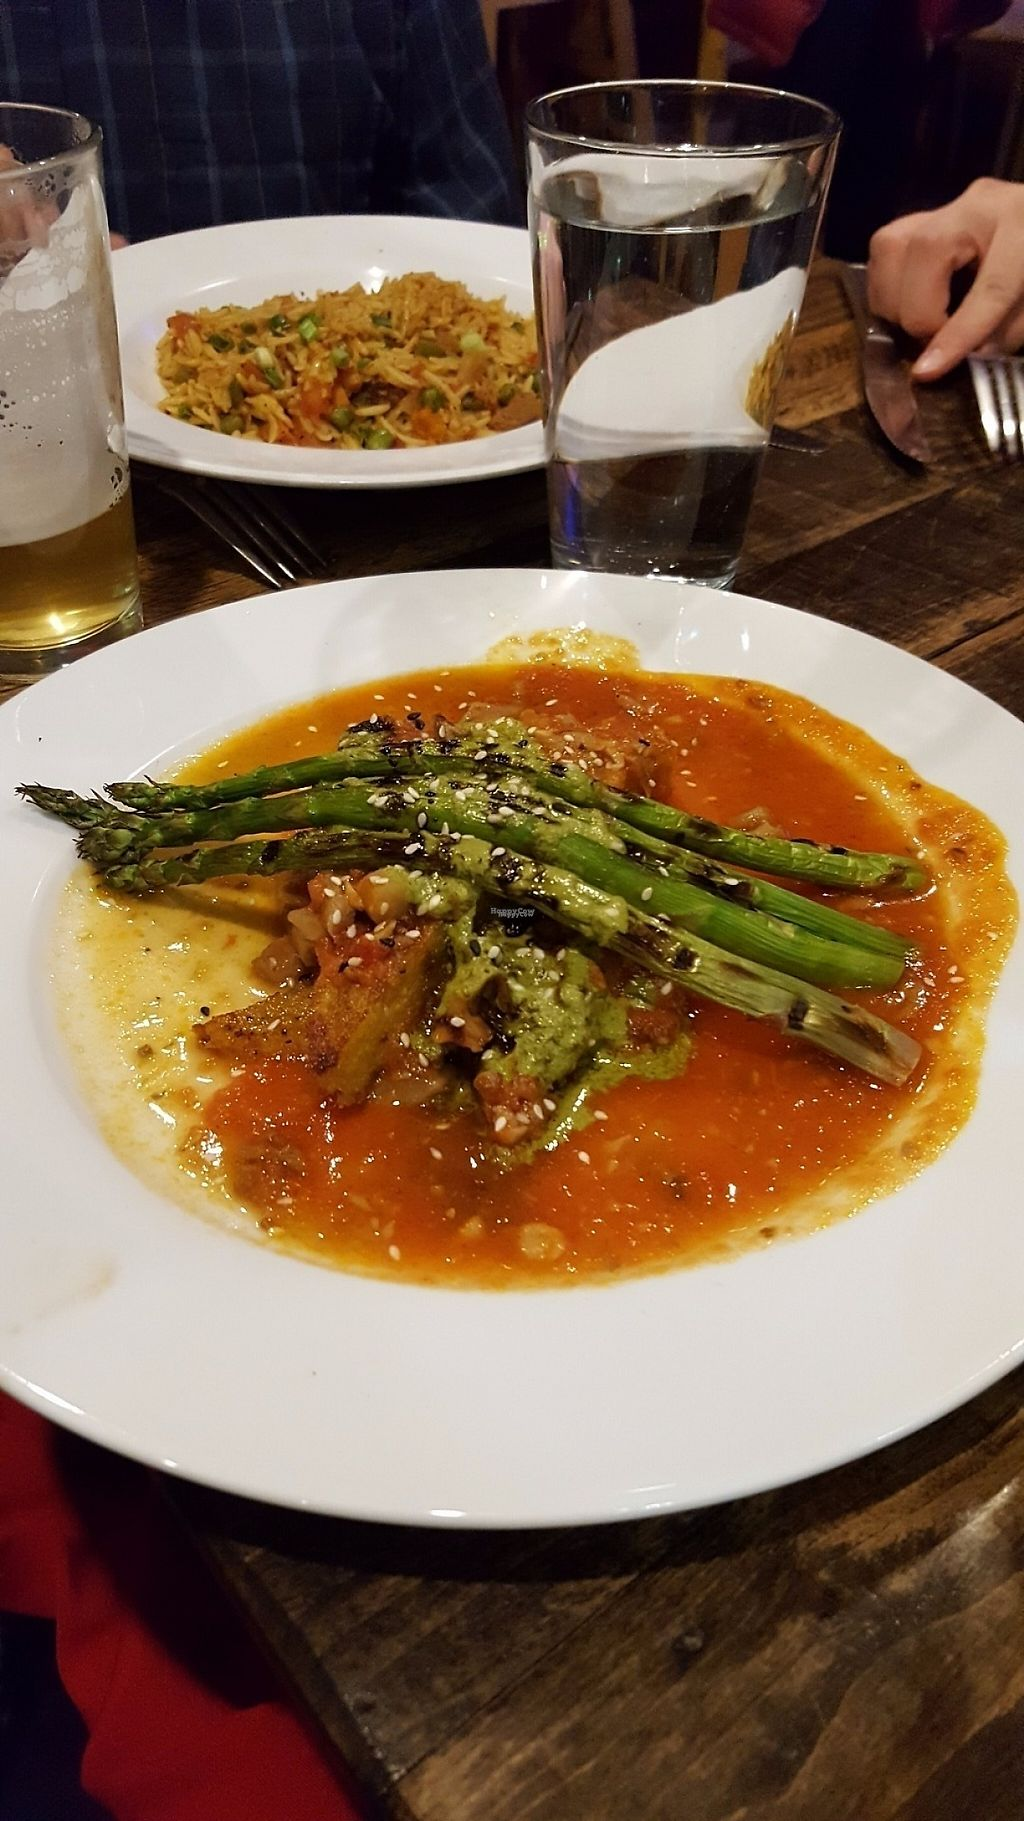 """Photo of The Red Lentil  by <a href=""""/members/profile/veganin2014"""">veganin2014</a> <br/>Butternut squash Polenta <br/> March 7, 2017  - <a href='/contact/abuse/image/18827/233983'>Report</a>"""